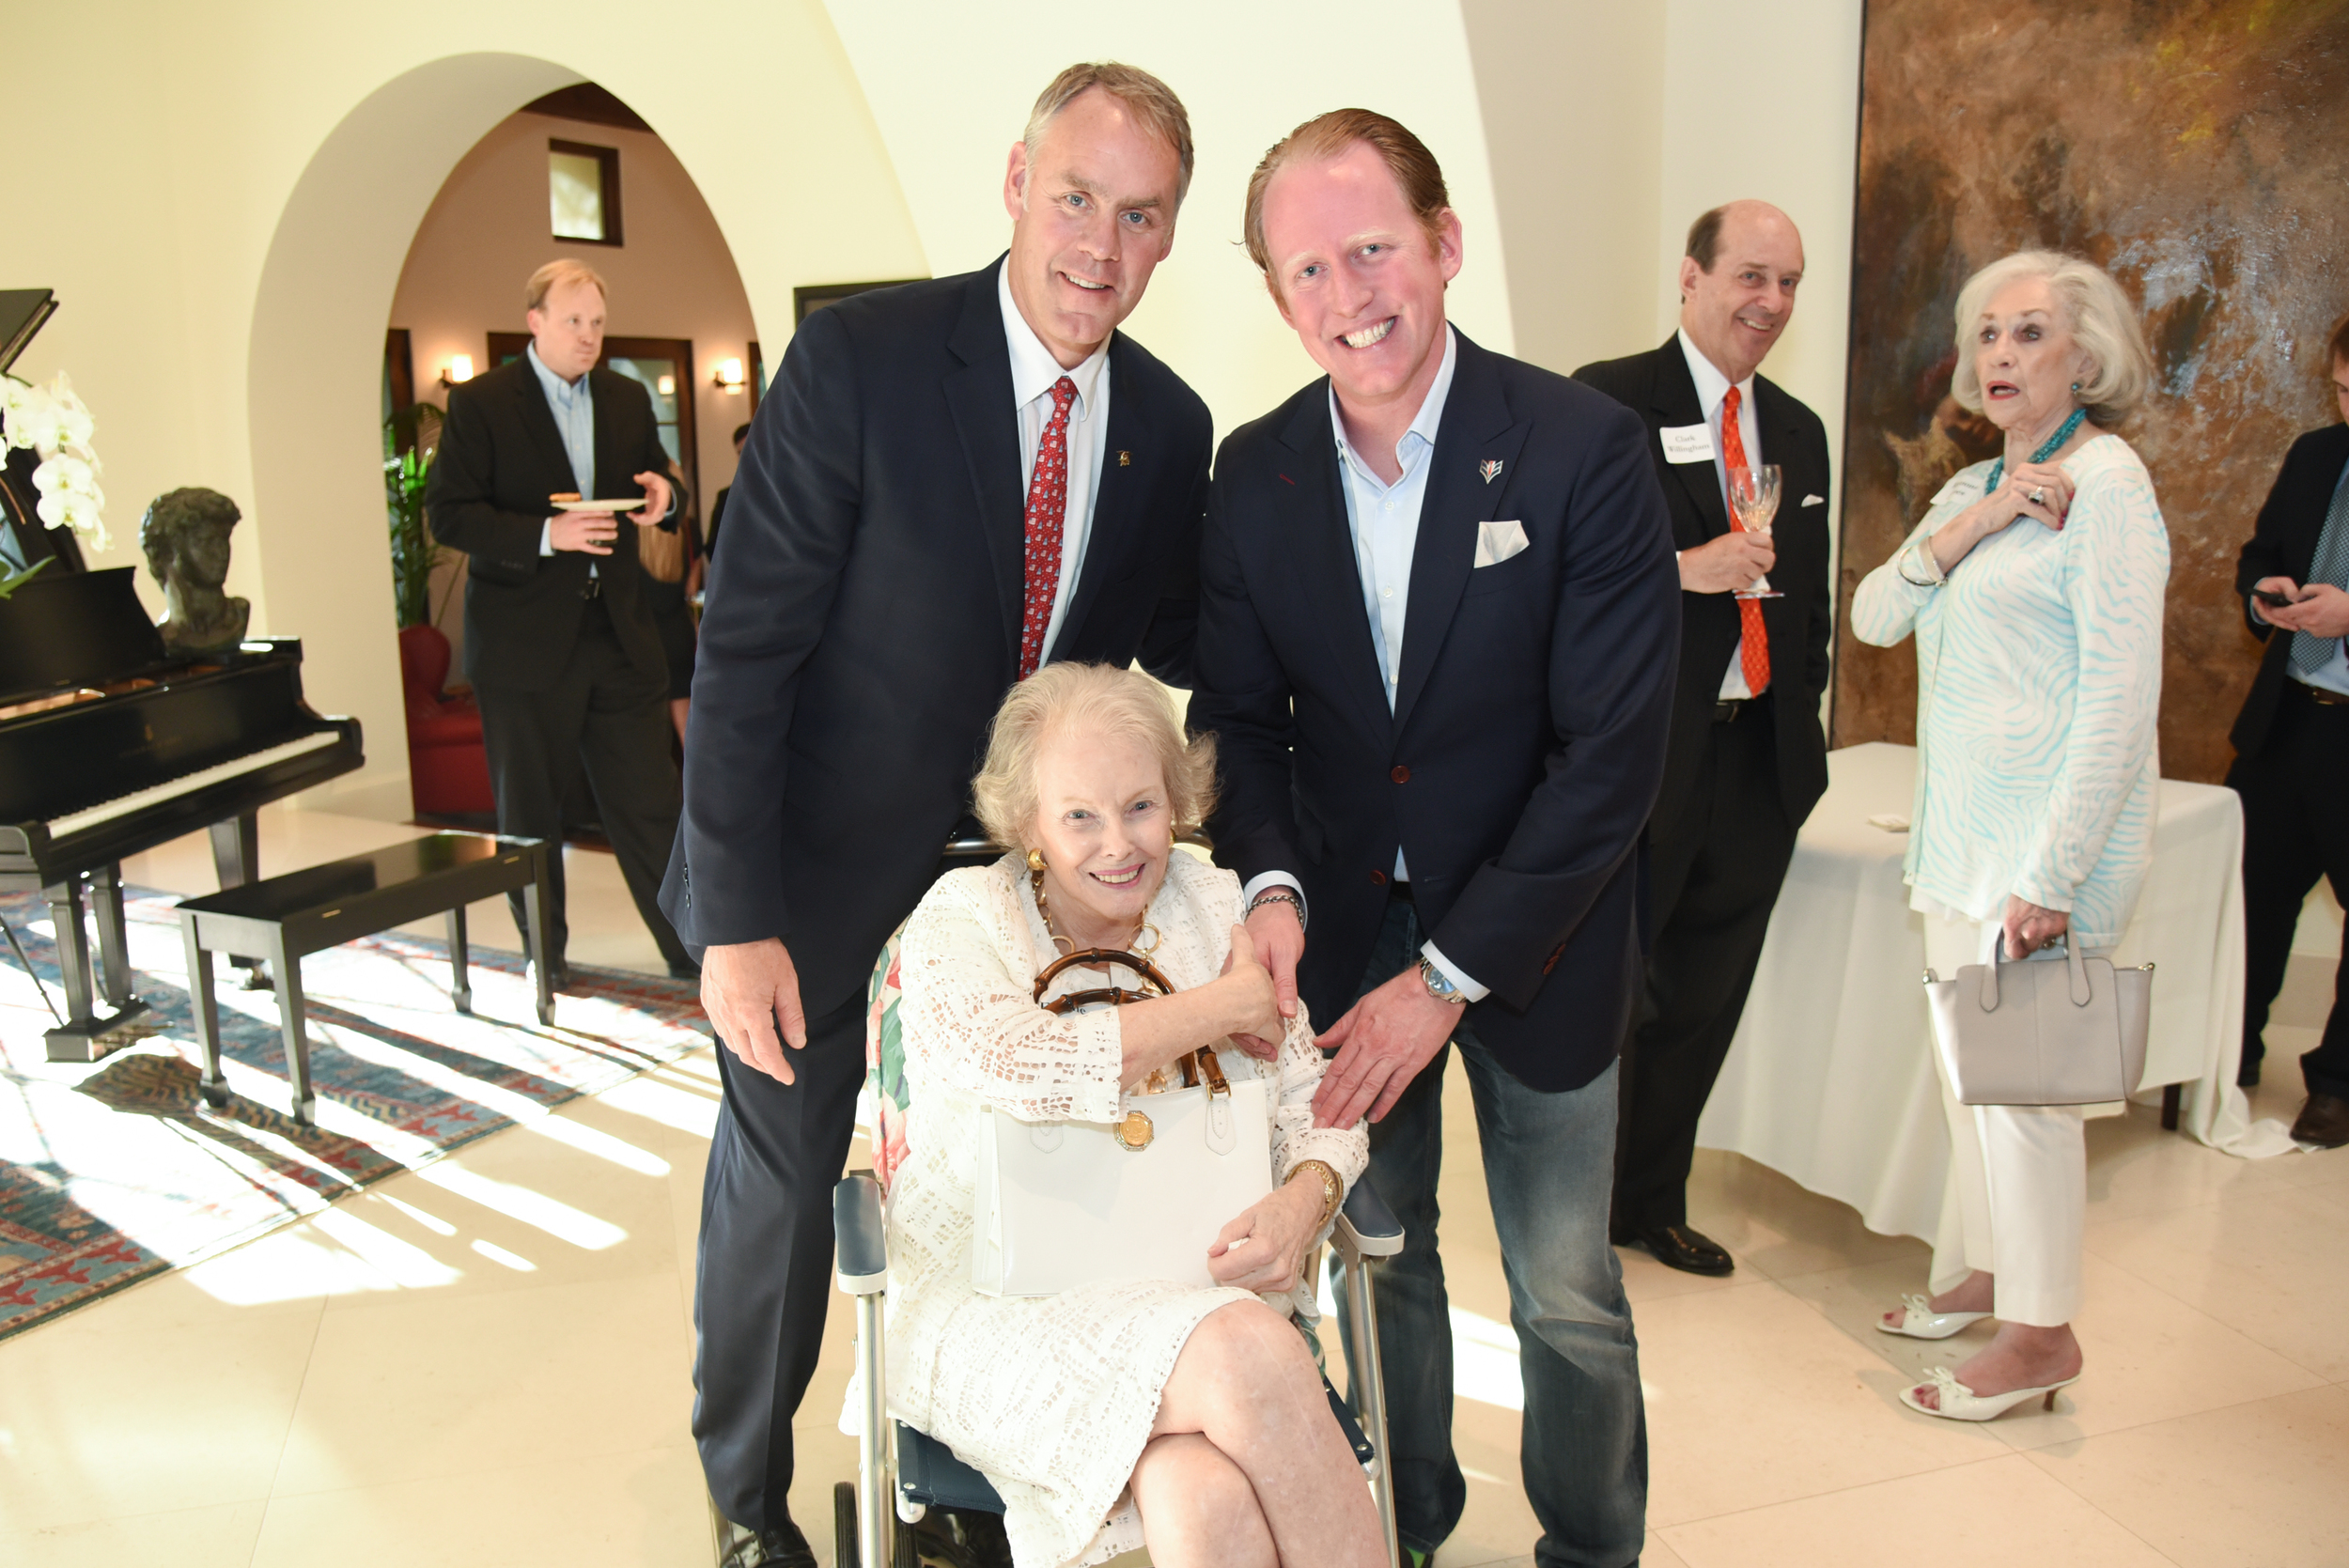 Congressman Ryan Zinke and Rob O'Neill with a Dallas native and Zinke supporter at a Dallas reception in May 2016.